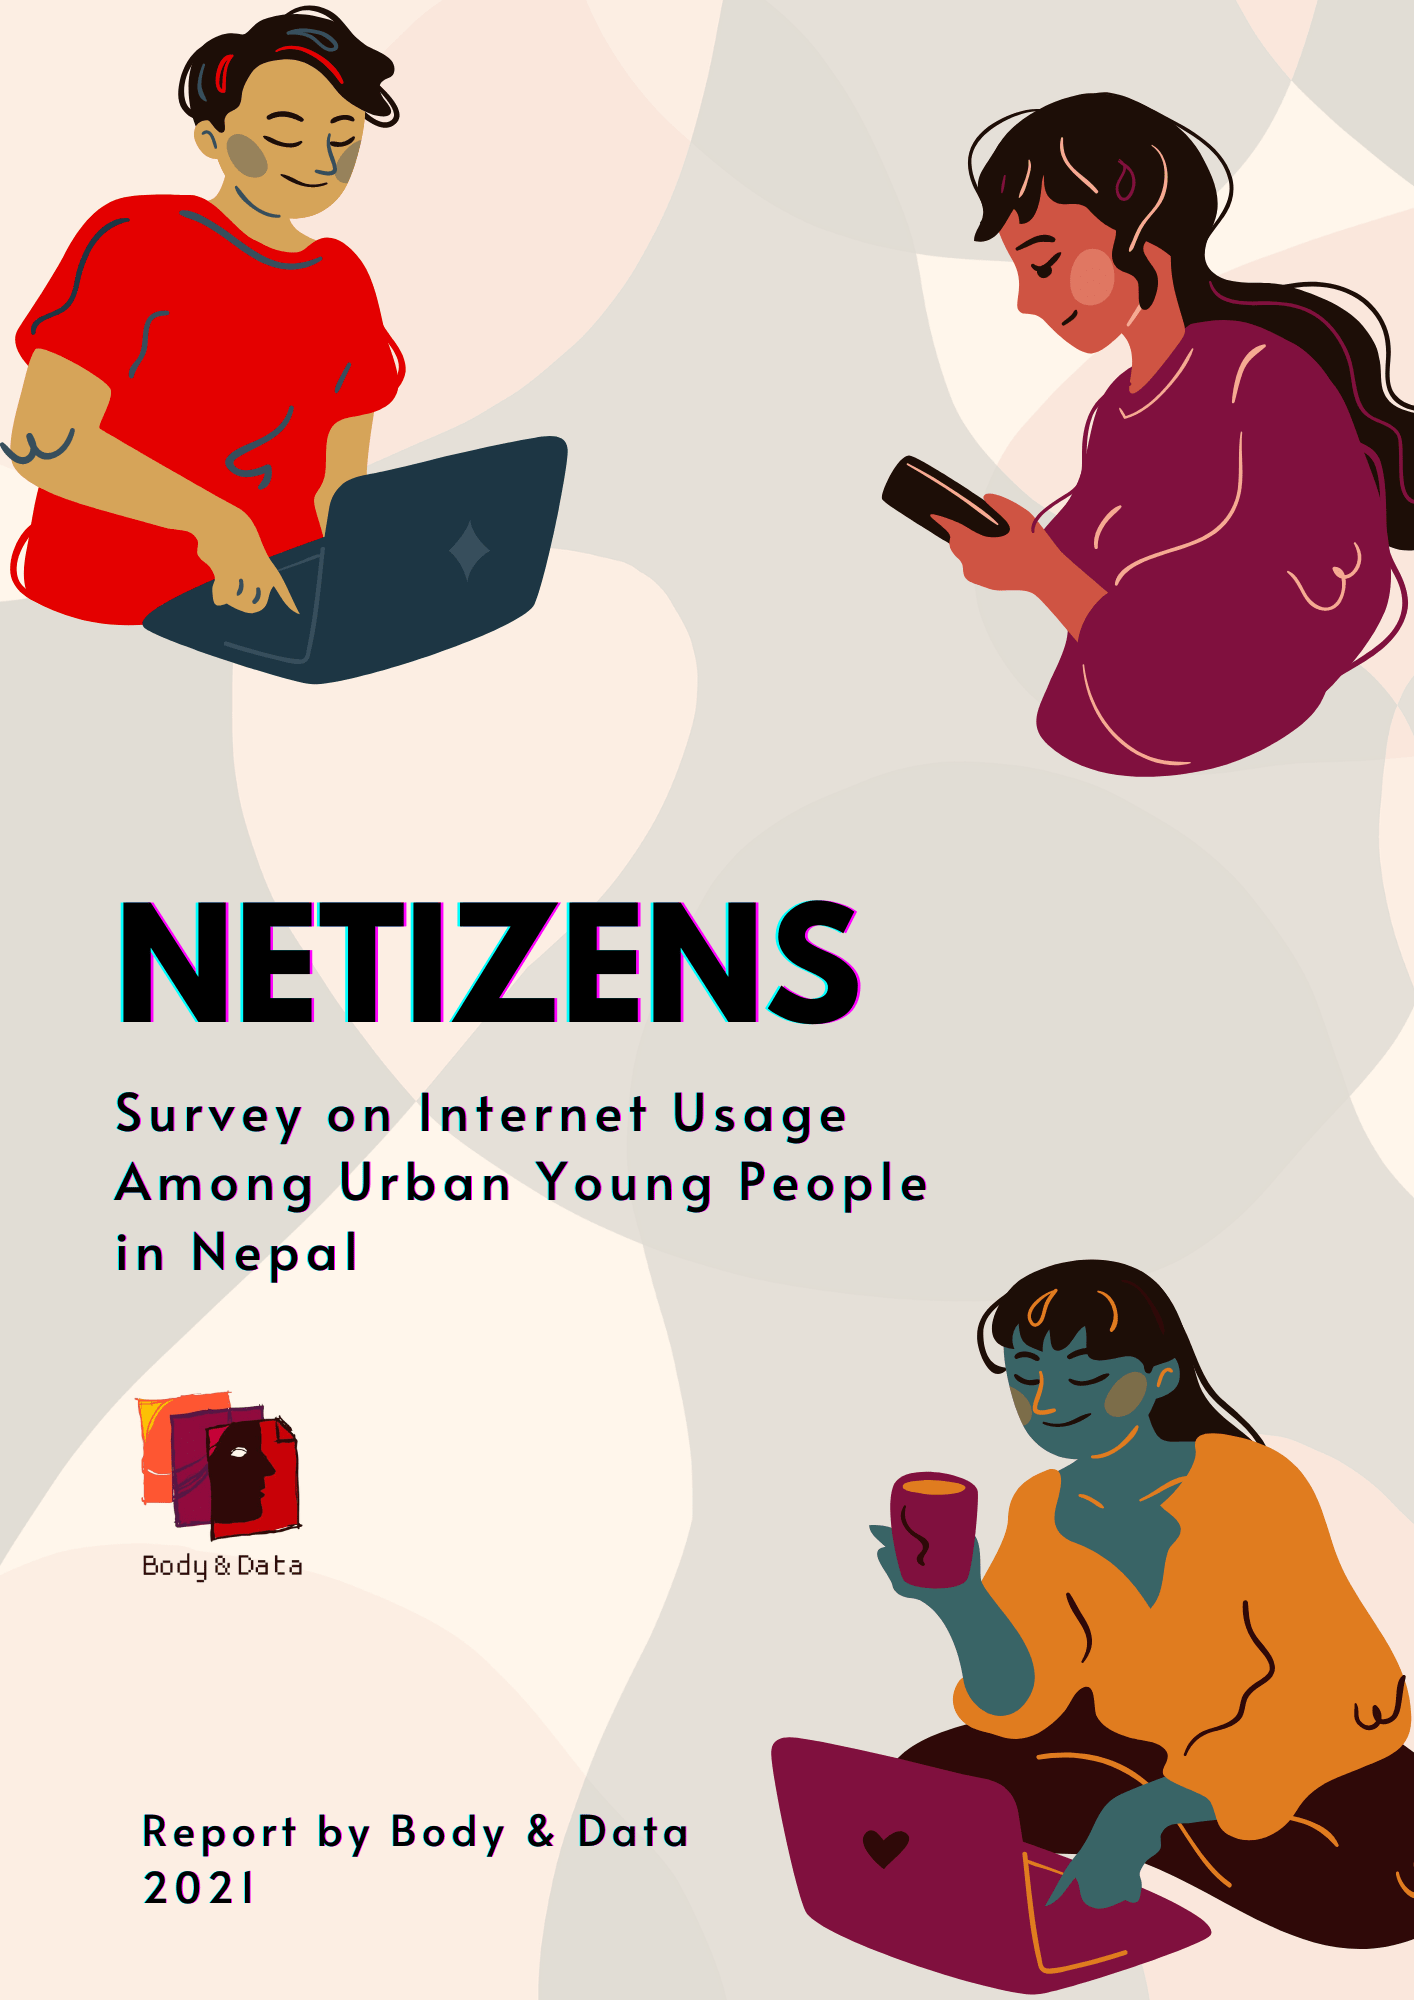 Netizens: Survey on Internet Usage Among Urban Young People in Nepal